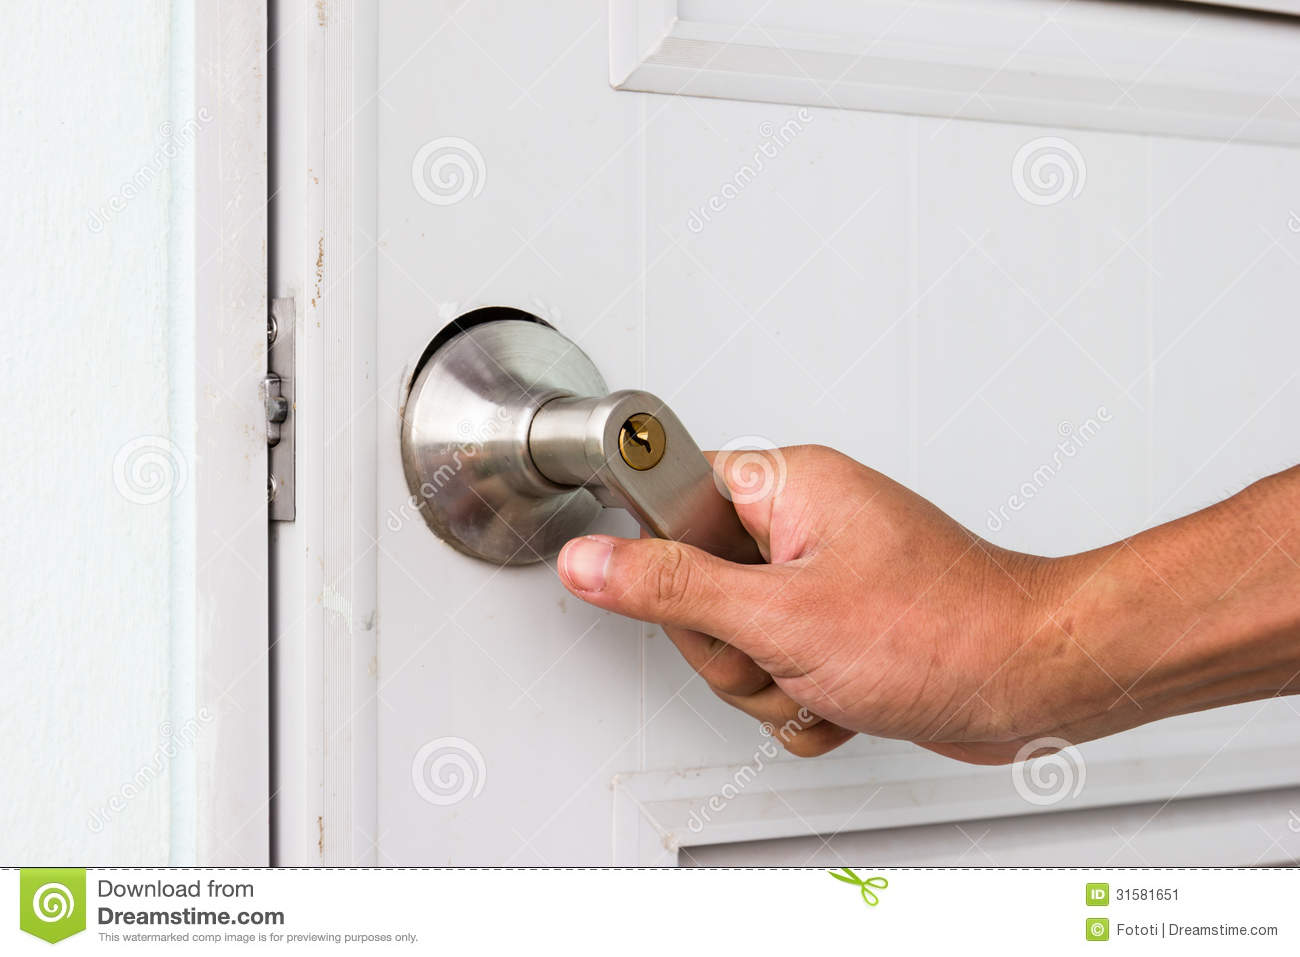 Royalty-Free Stock Photo & Opening Door Knob Stock Image - Image: 31581651 Pezcame.Com